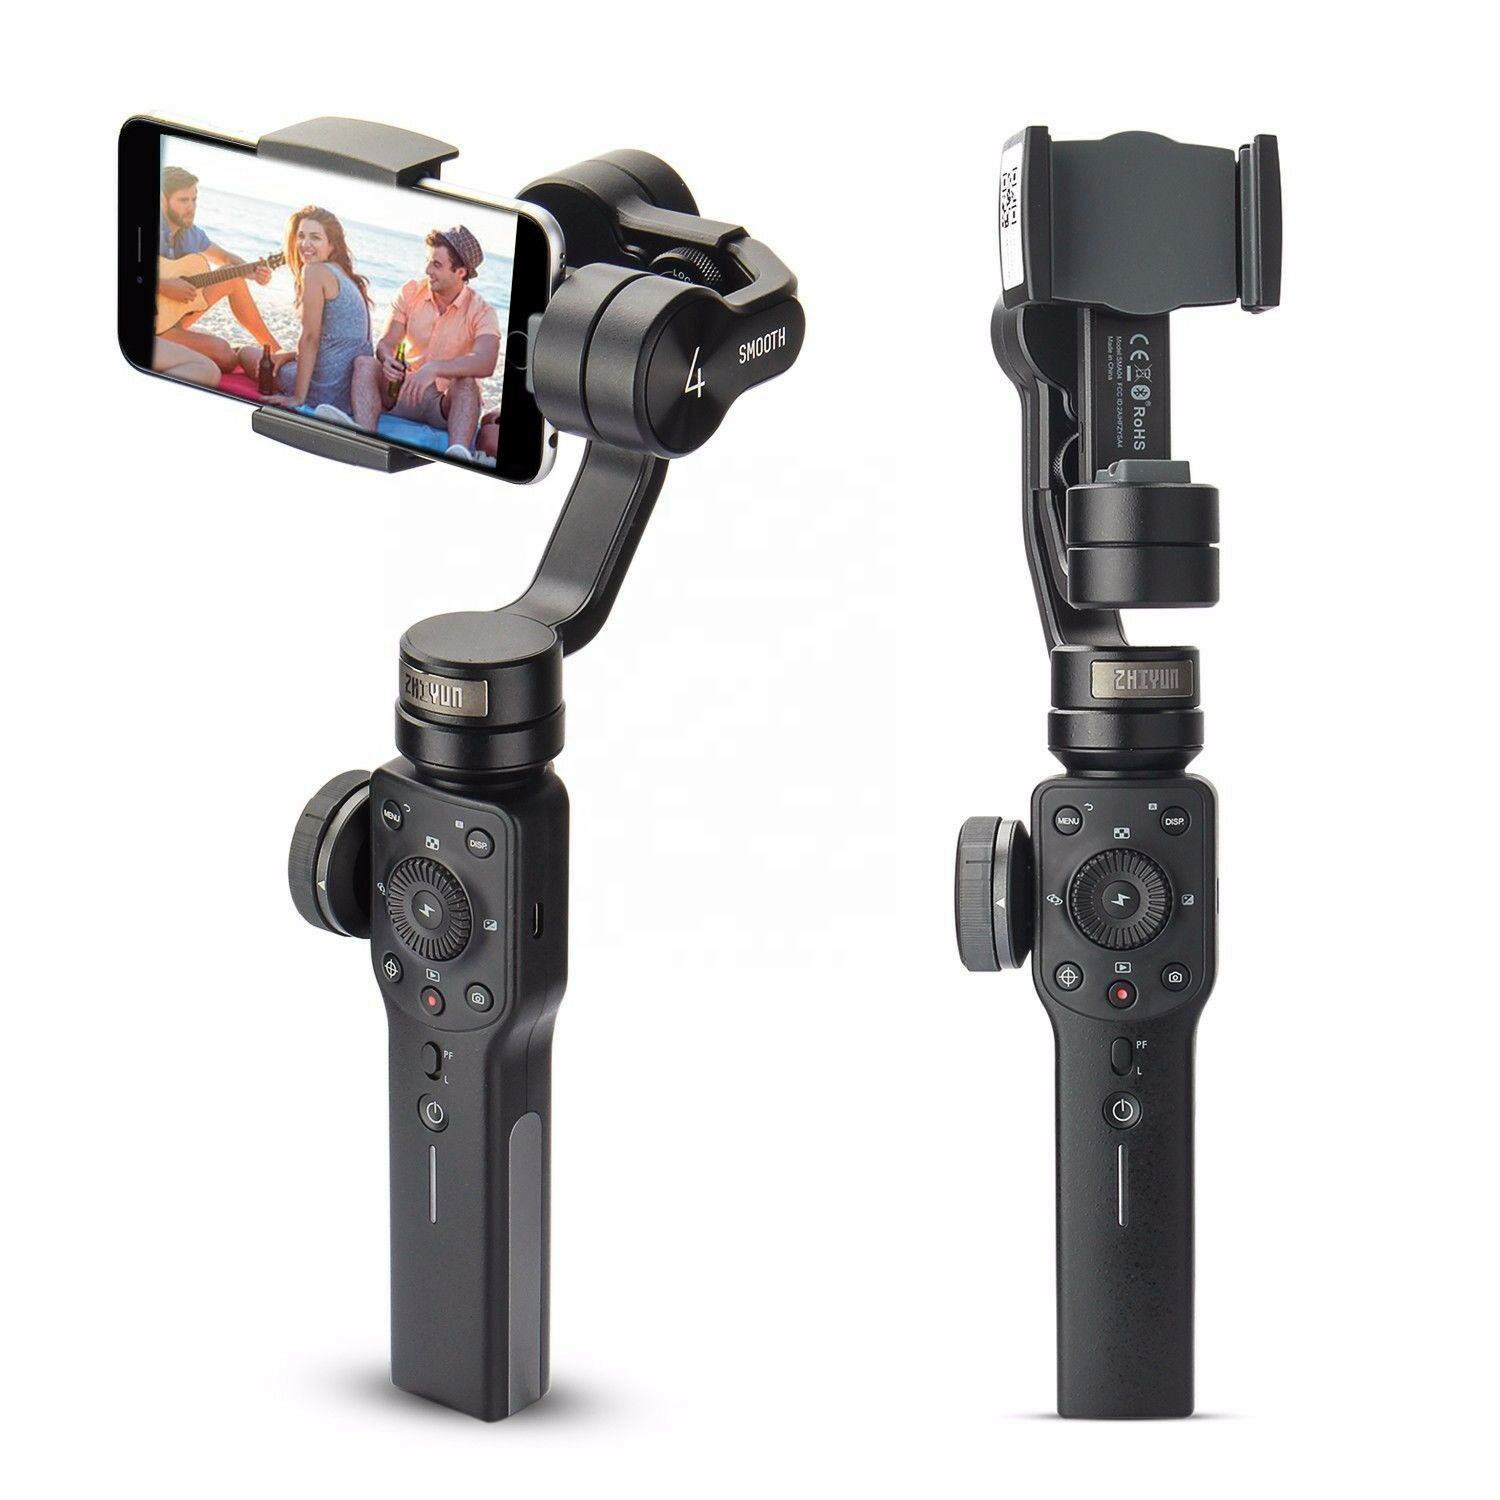 Zhiyun Smooth 4 3-Axis Handheld Gimbal Stabilizer w/Focus Pull & Zoom For IOS Android Smartphone